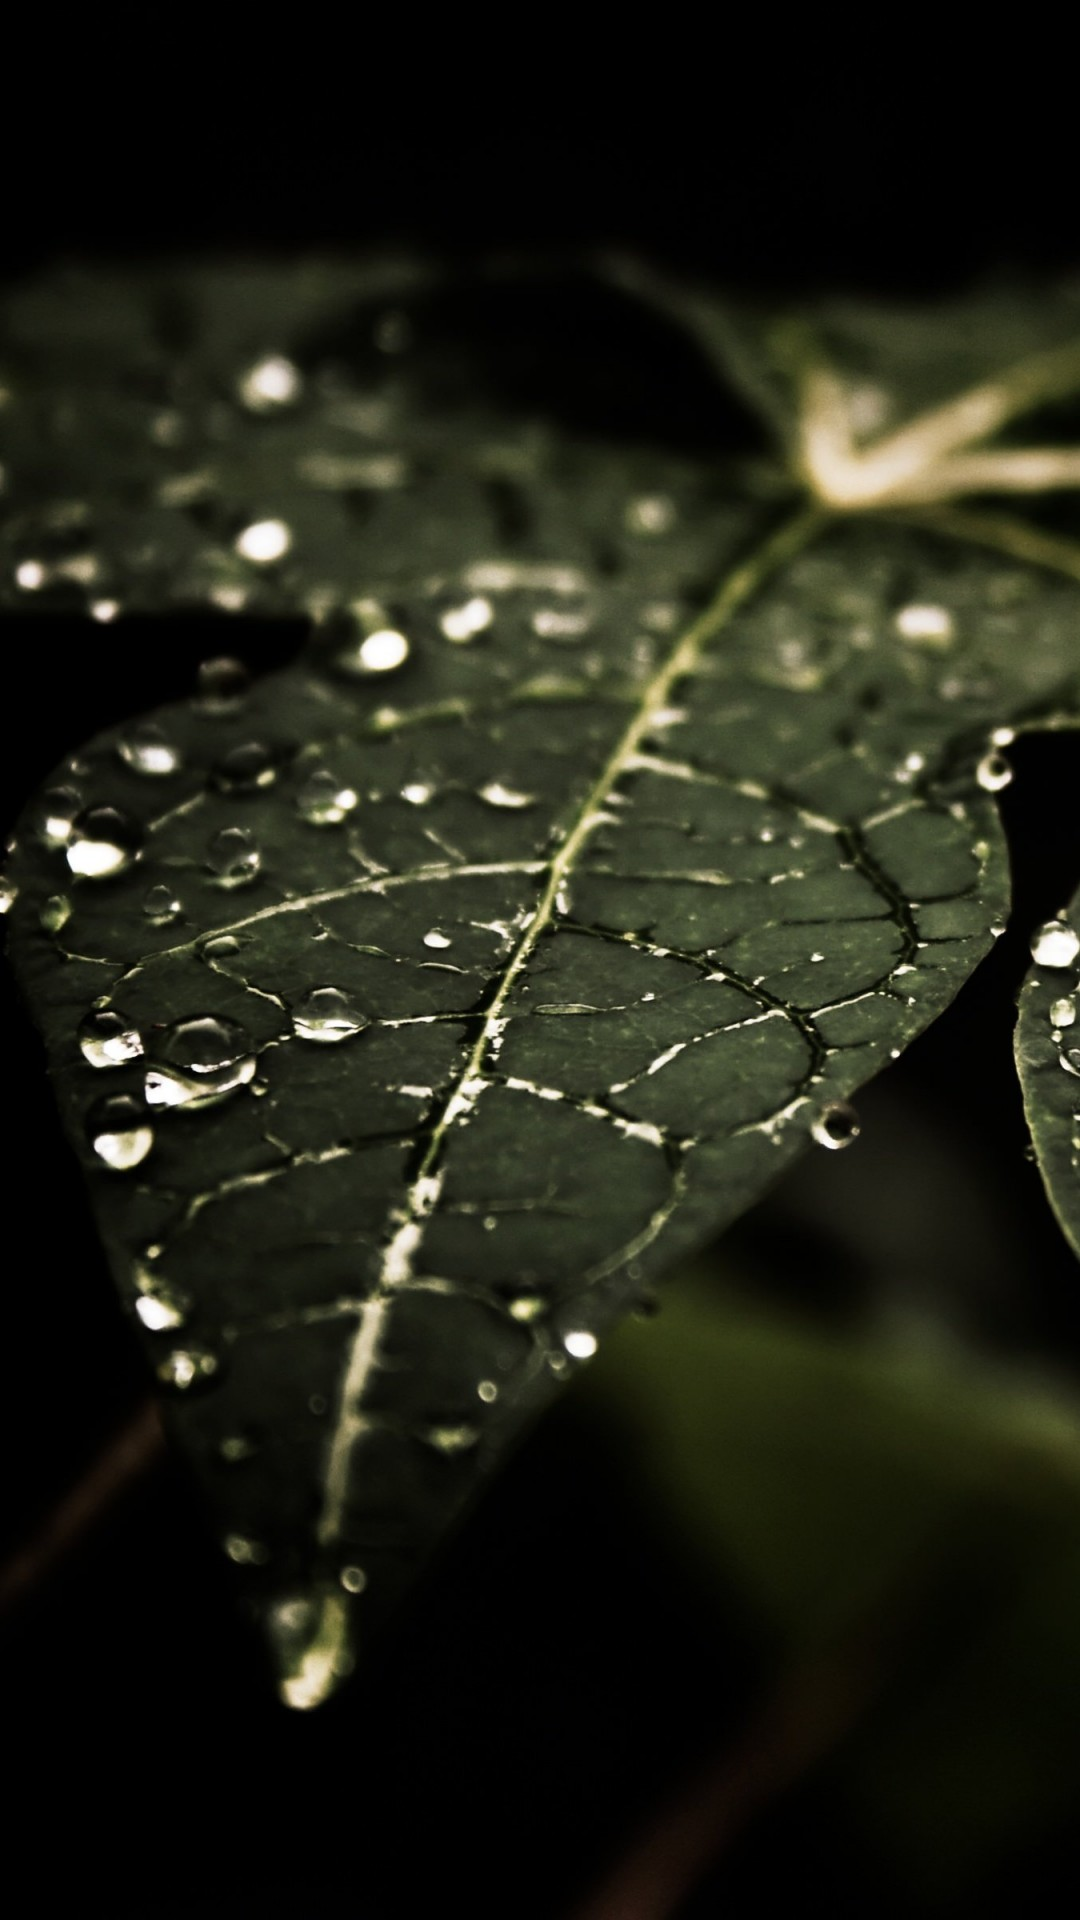 Droplets On Leaves Wallpaper for Google Nexus 5X